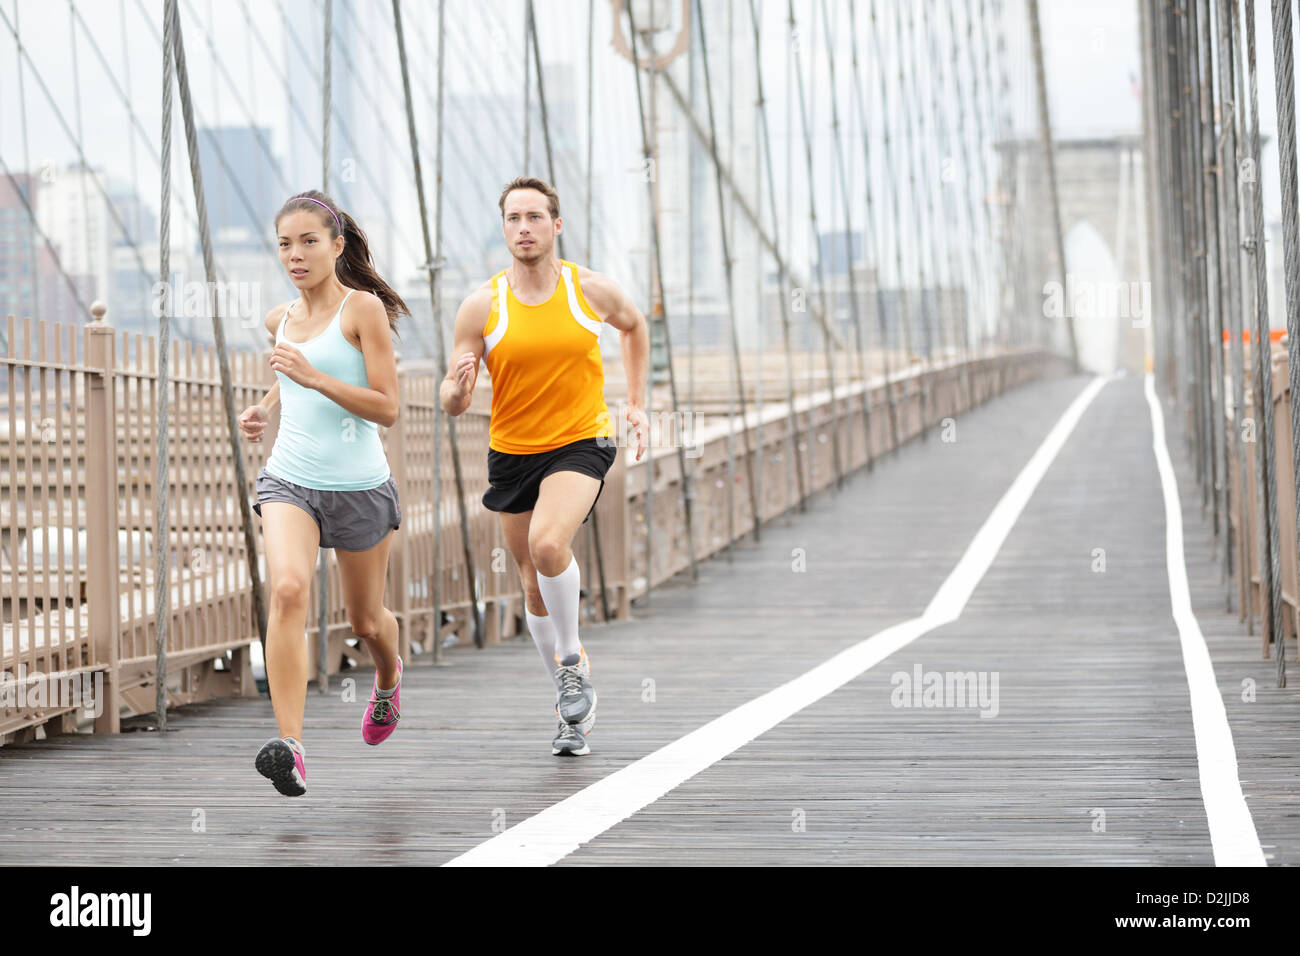 Full length of Asian woman and Caucasian man jogging on Brooklyn Bridge, New York City, USA Stock Photo